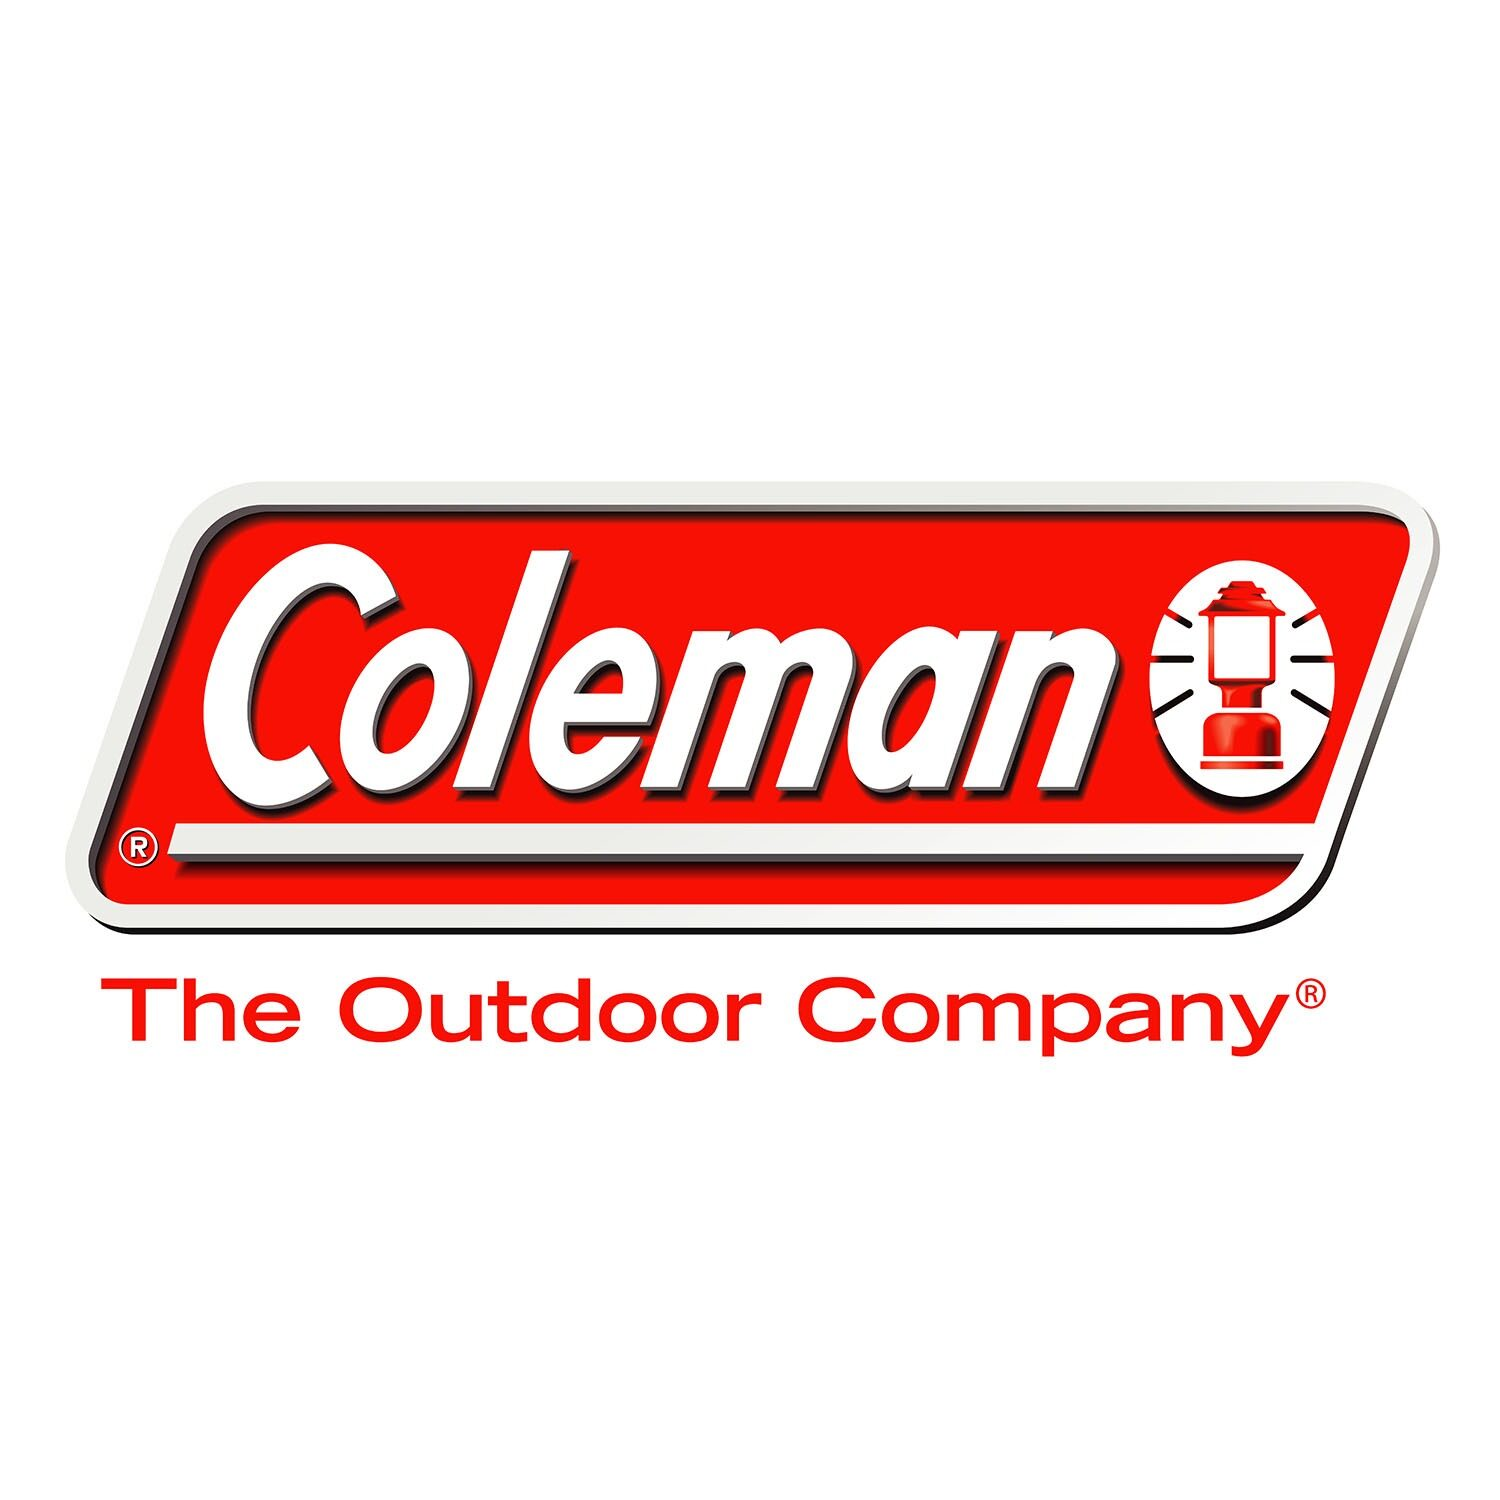 Coleman : 15% off, min RM300, max dis RM1000